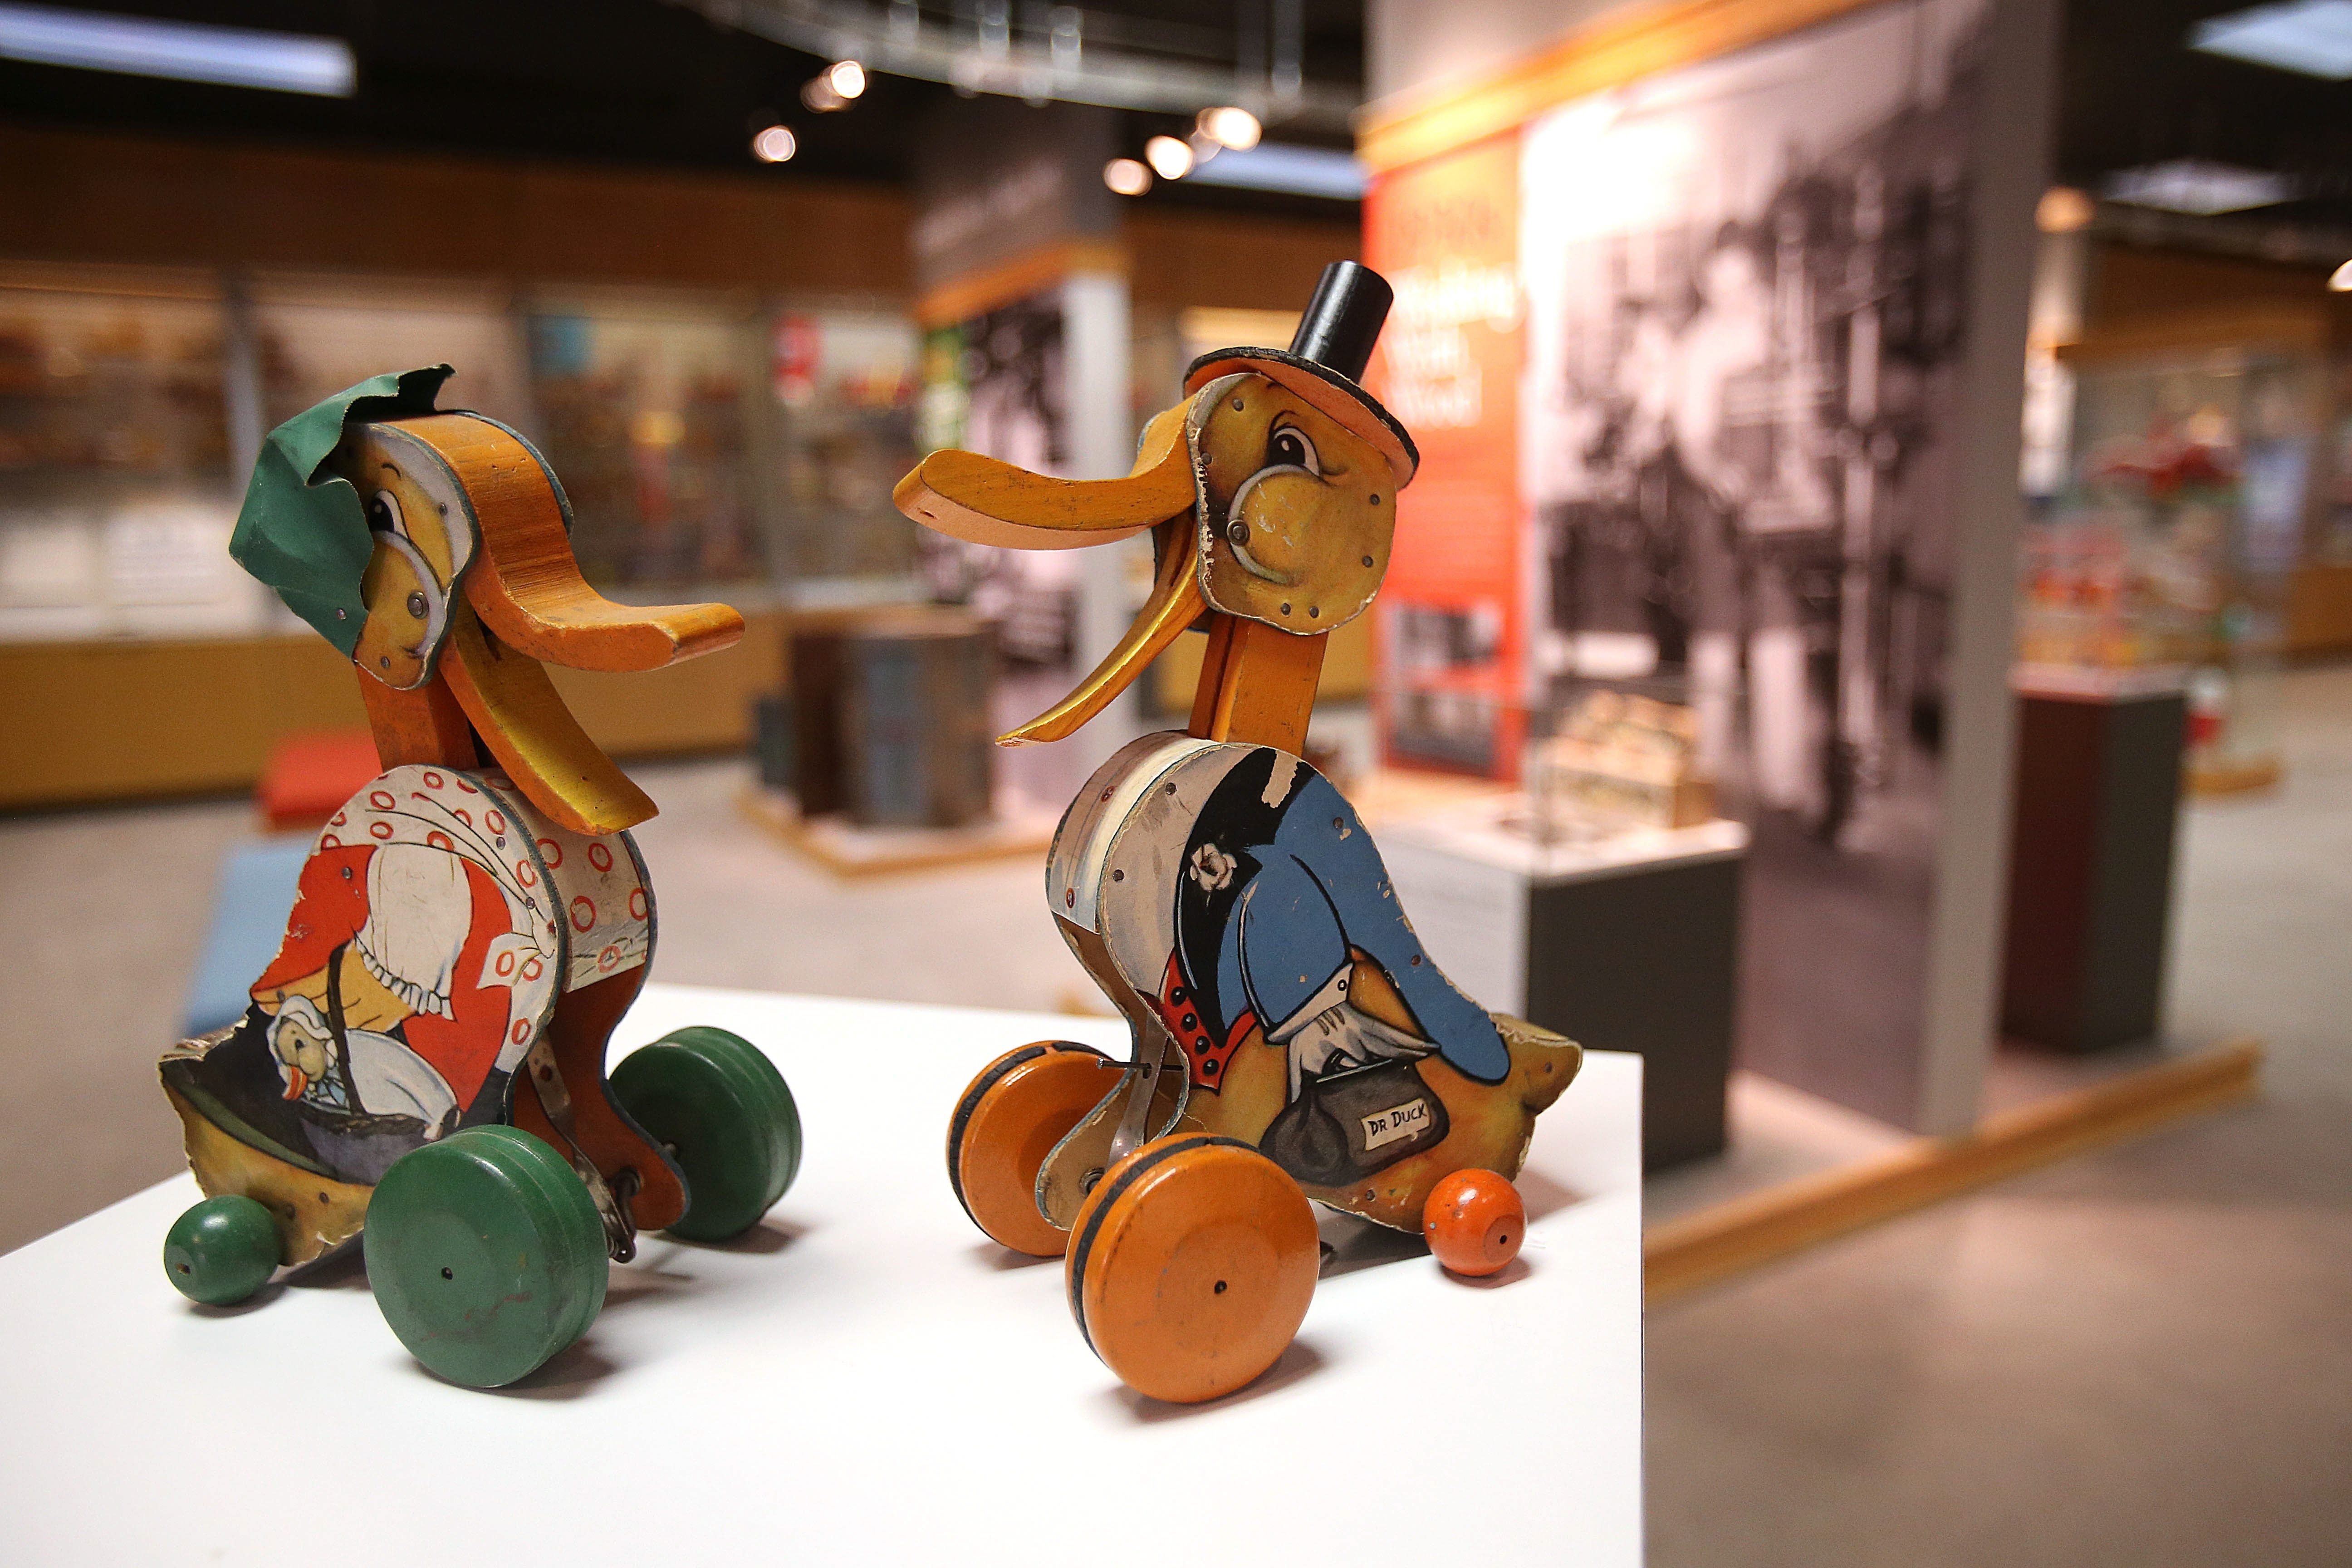 Introduced in 1931, the Dr. Doodle and Granny Doodle ducks were Fisher-Price's earliest pull toys.  These originals are housed in the company's Heritage Center in East Aurora.